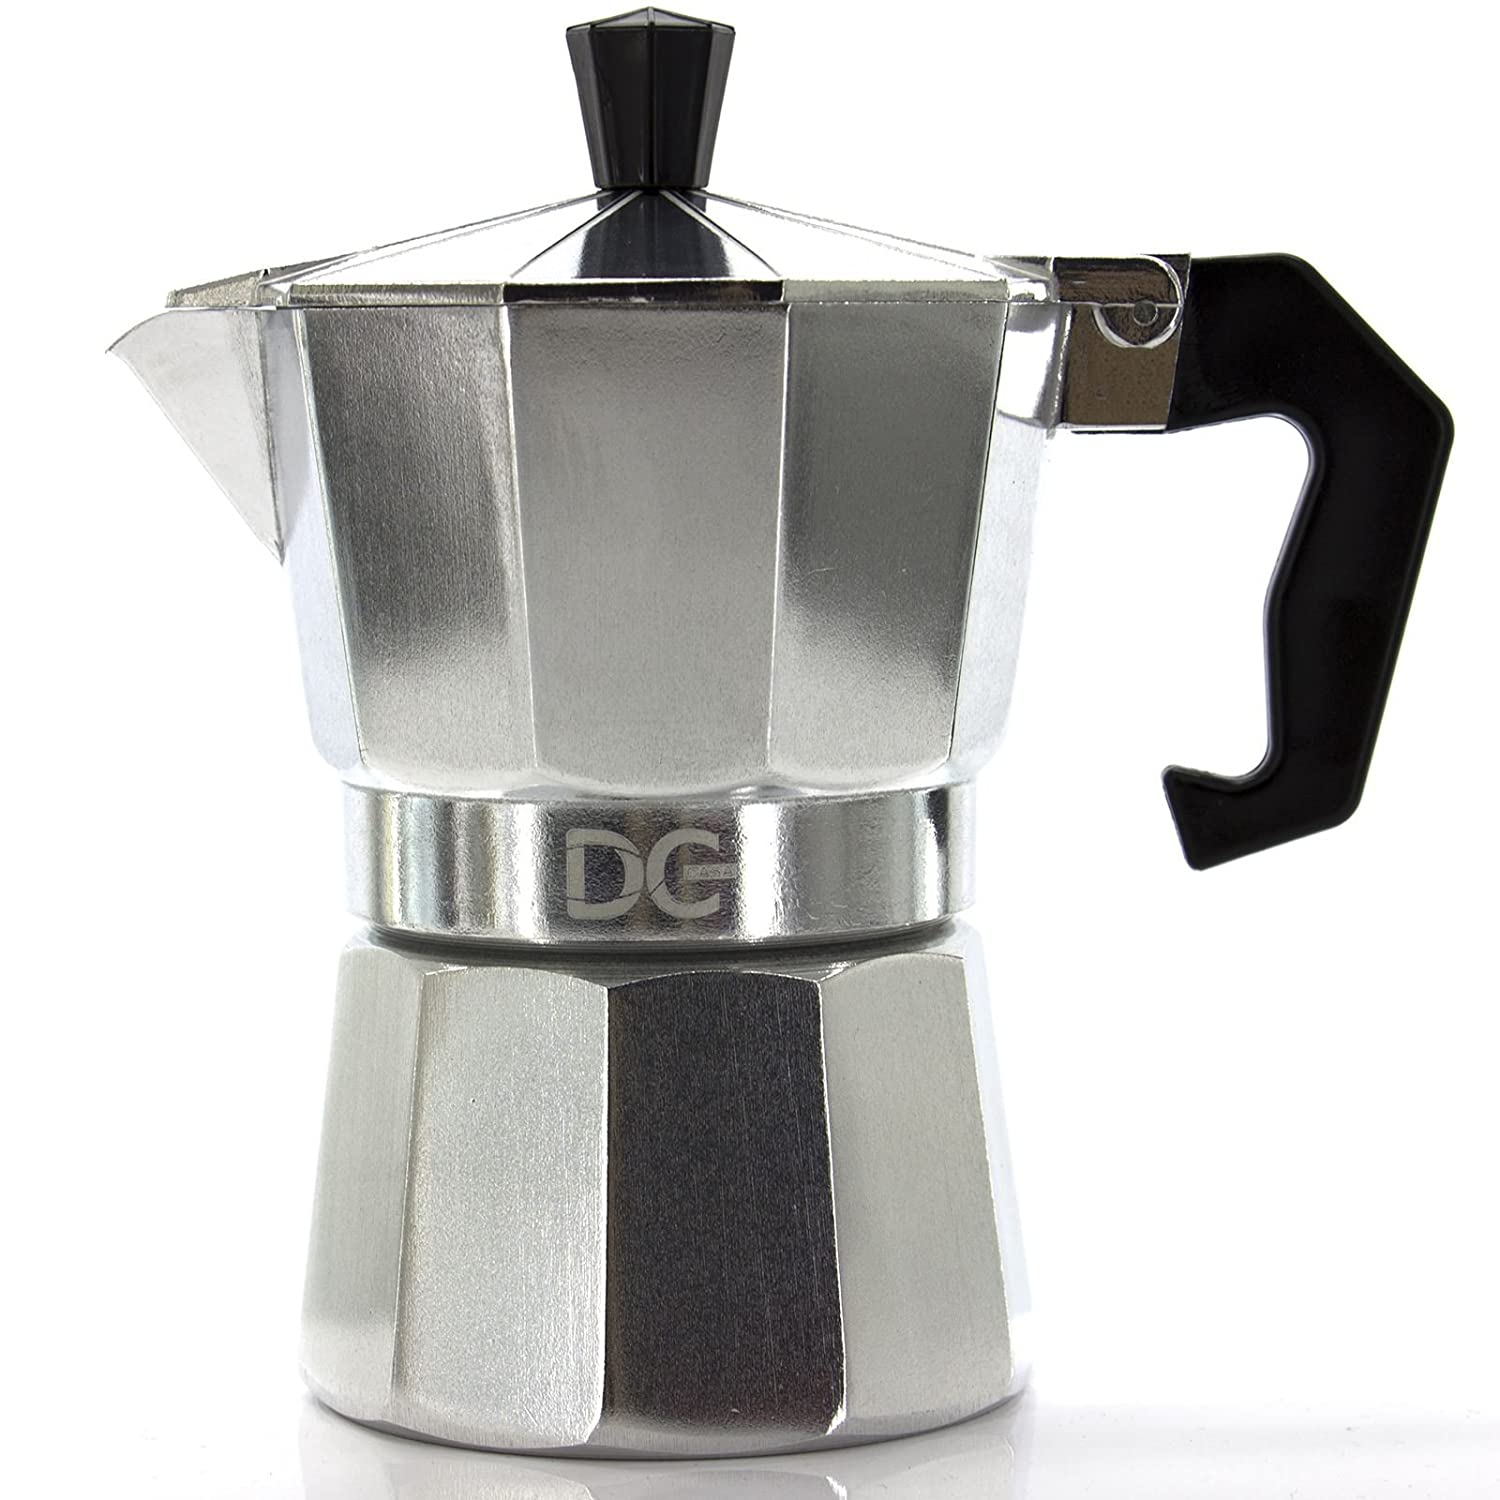 Espresso Coffee Maker in Aluminum, with Handle, 1/2 Cups - 9 Moka Coffee Cups, Cappuccino, Napoletana, Silver Color, 1 Cup 901711